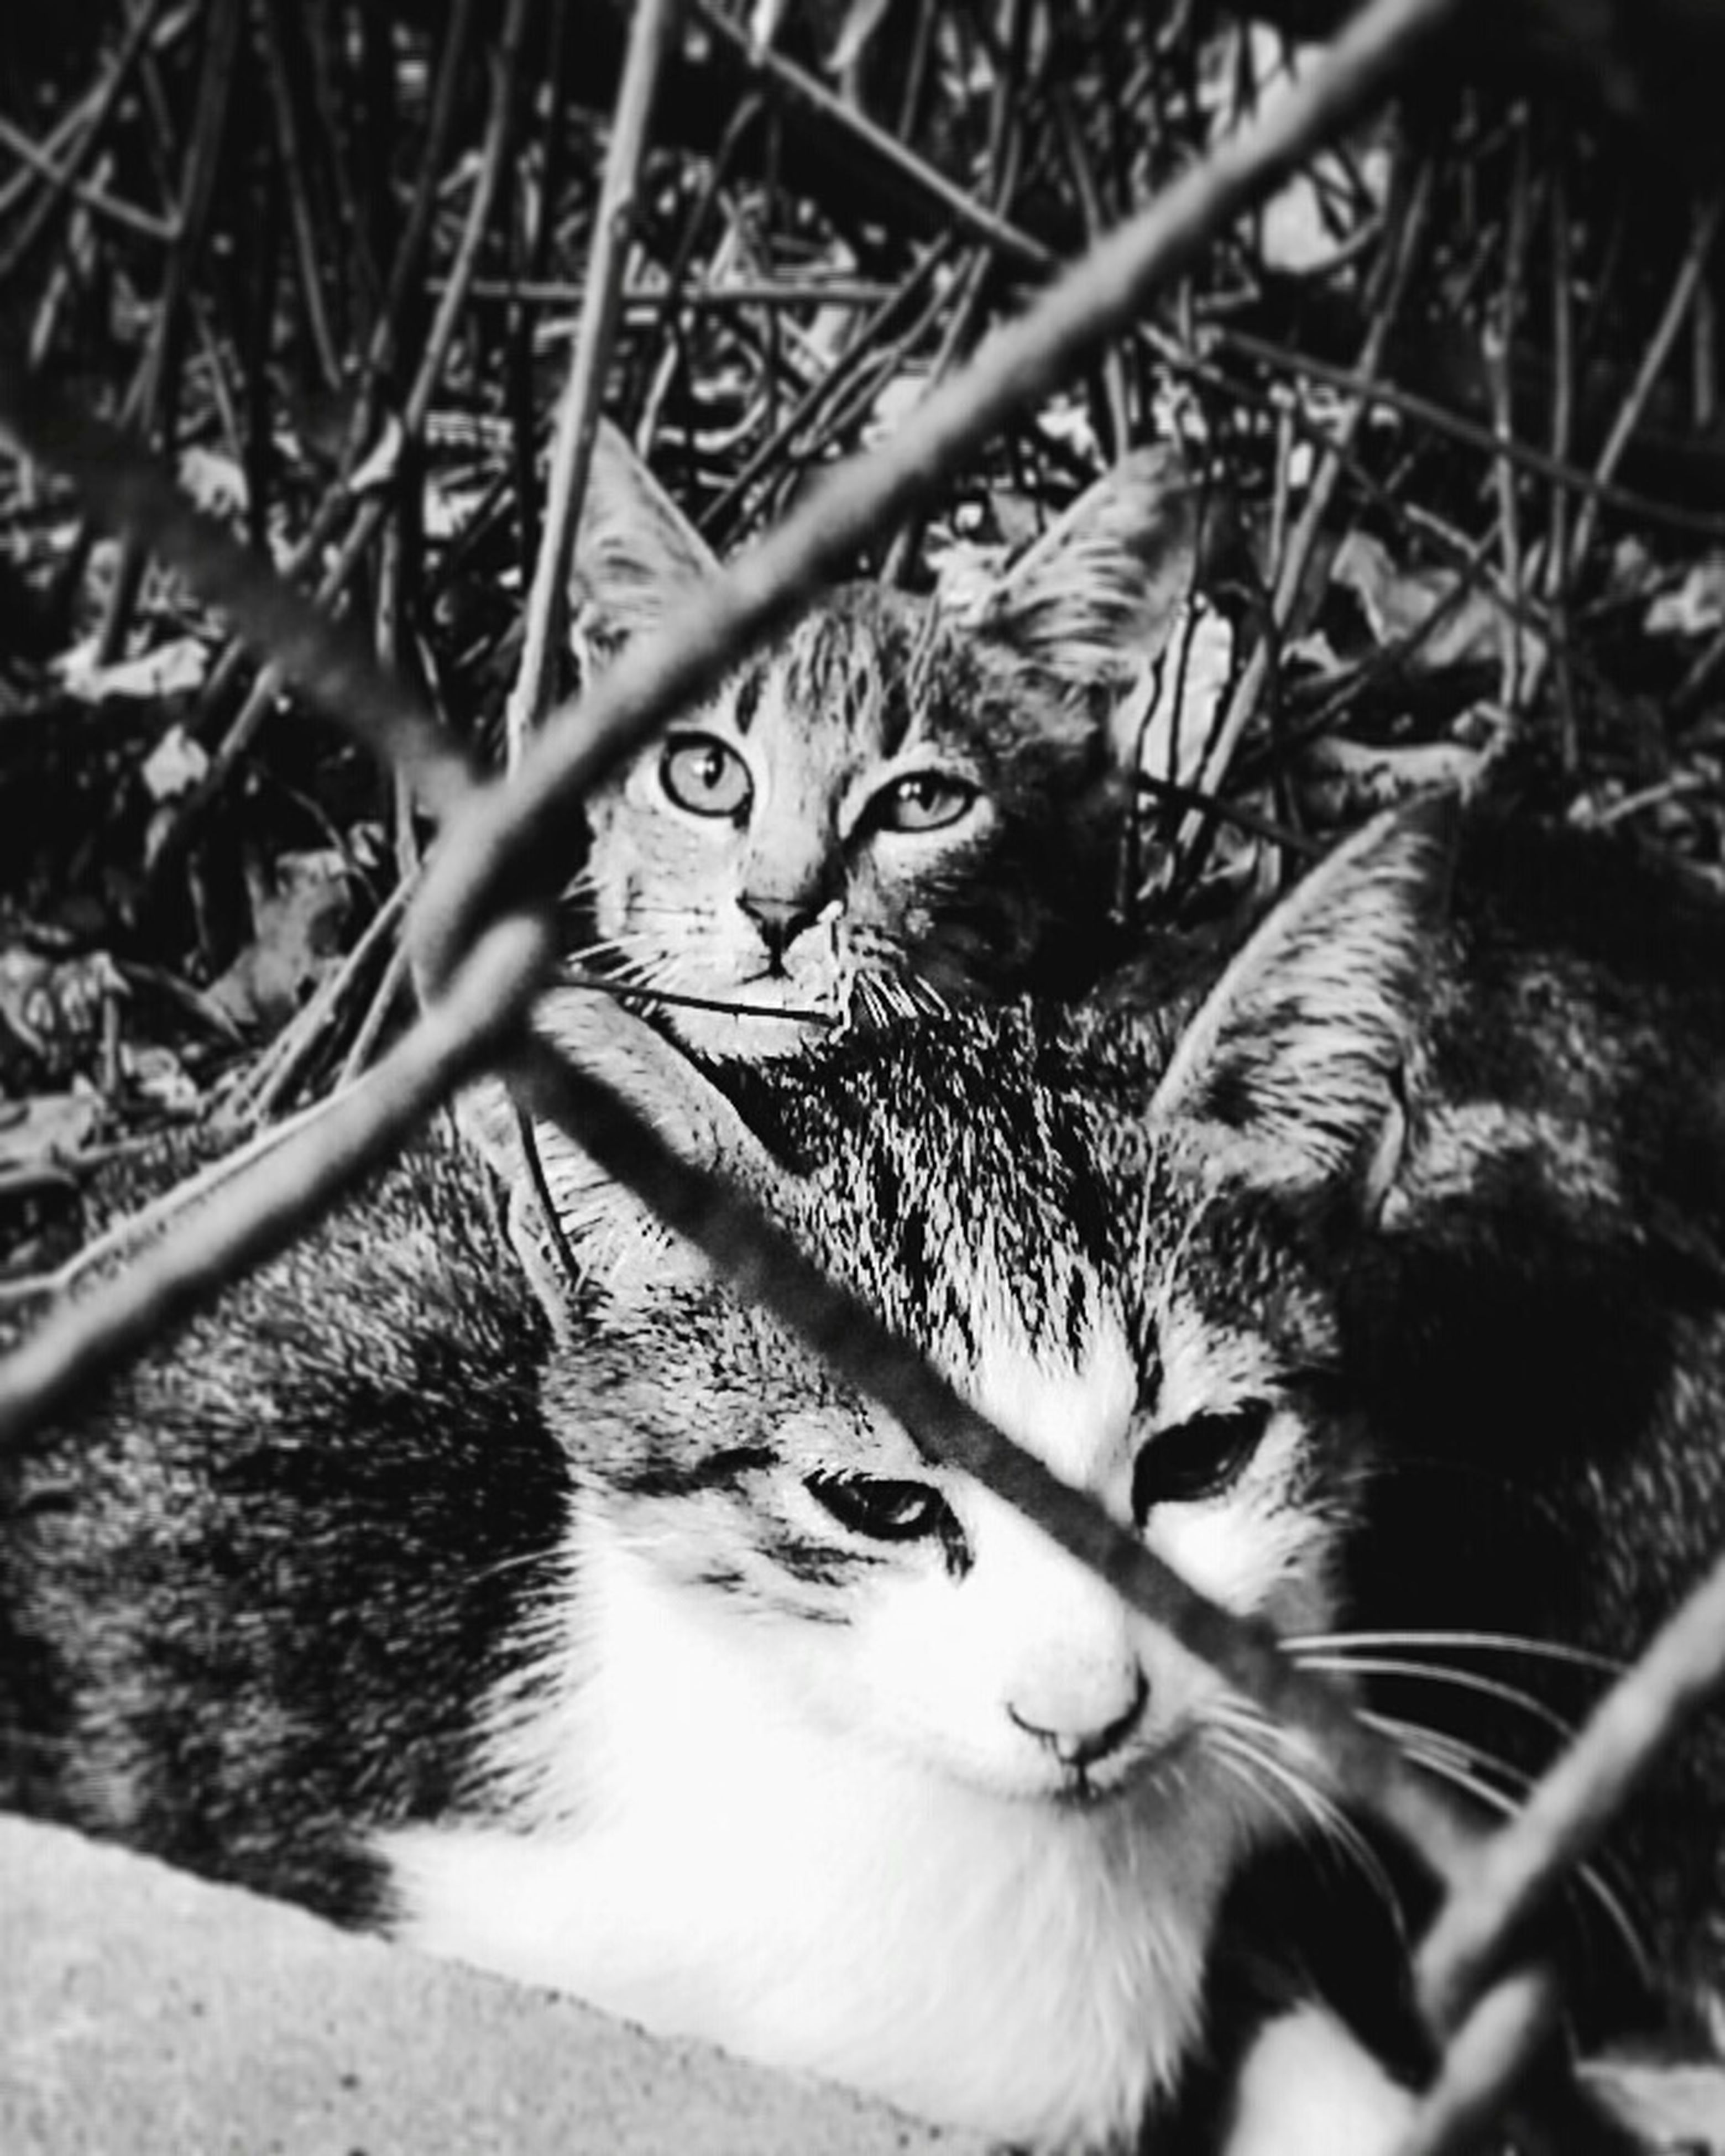 domestic cat, cat, pets, domestic animals, feline, animal themes, mammal, one animal, whisker, looking at camera, portrait, staring, sitting, alertness, relaxation, high angle view, plant, kitten, no people, close-up